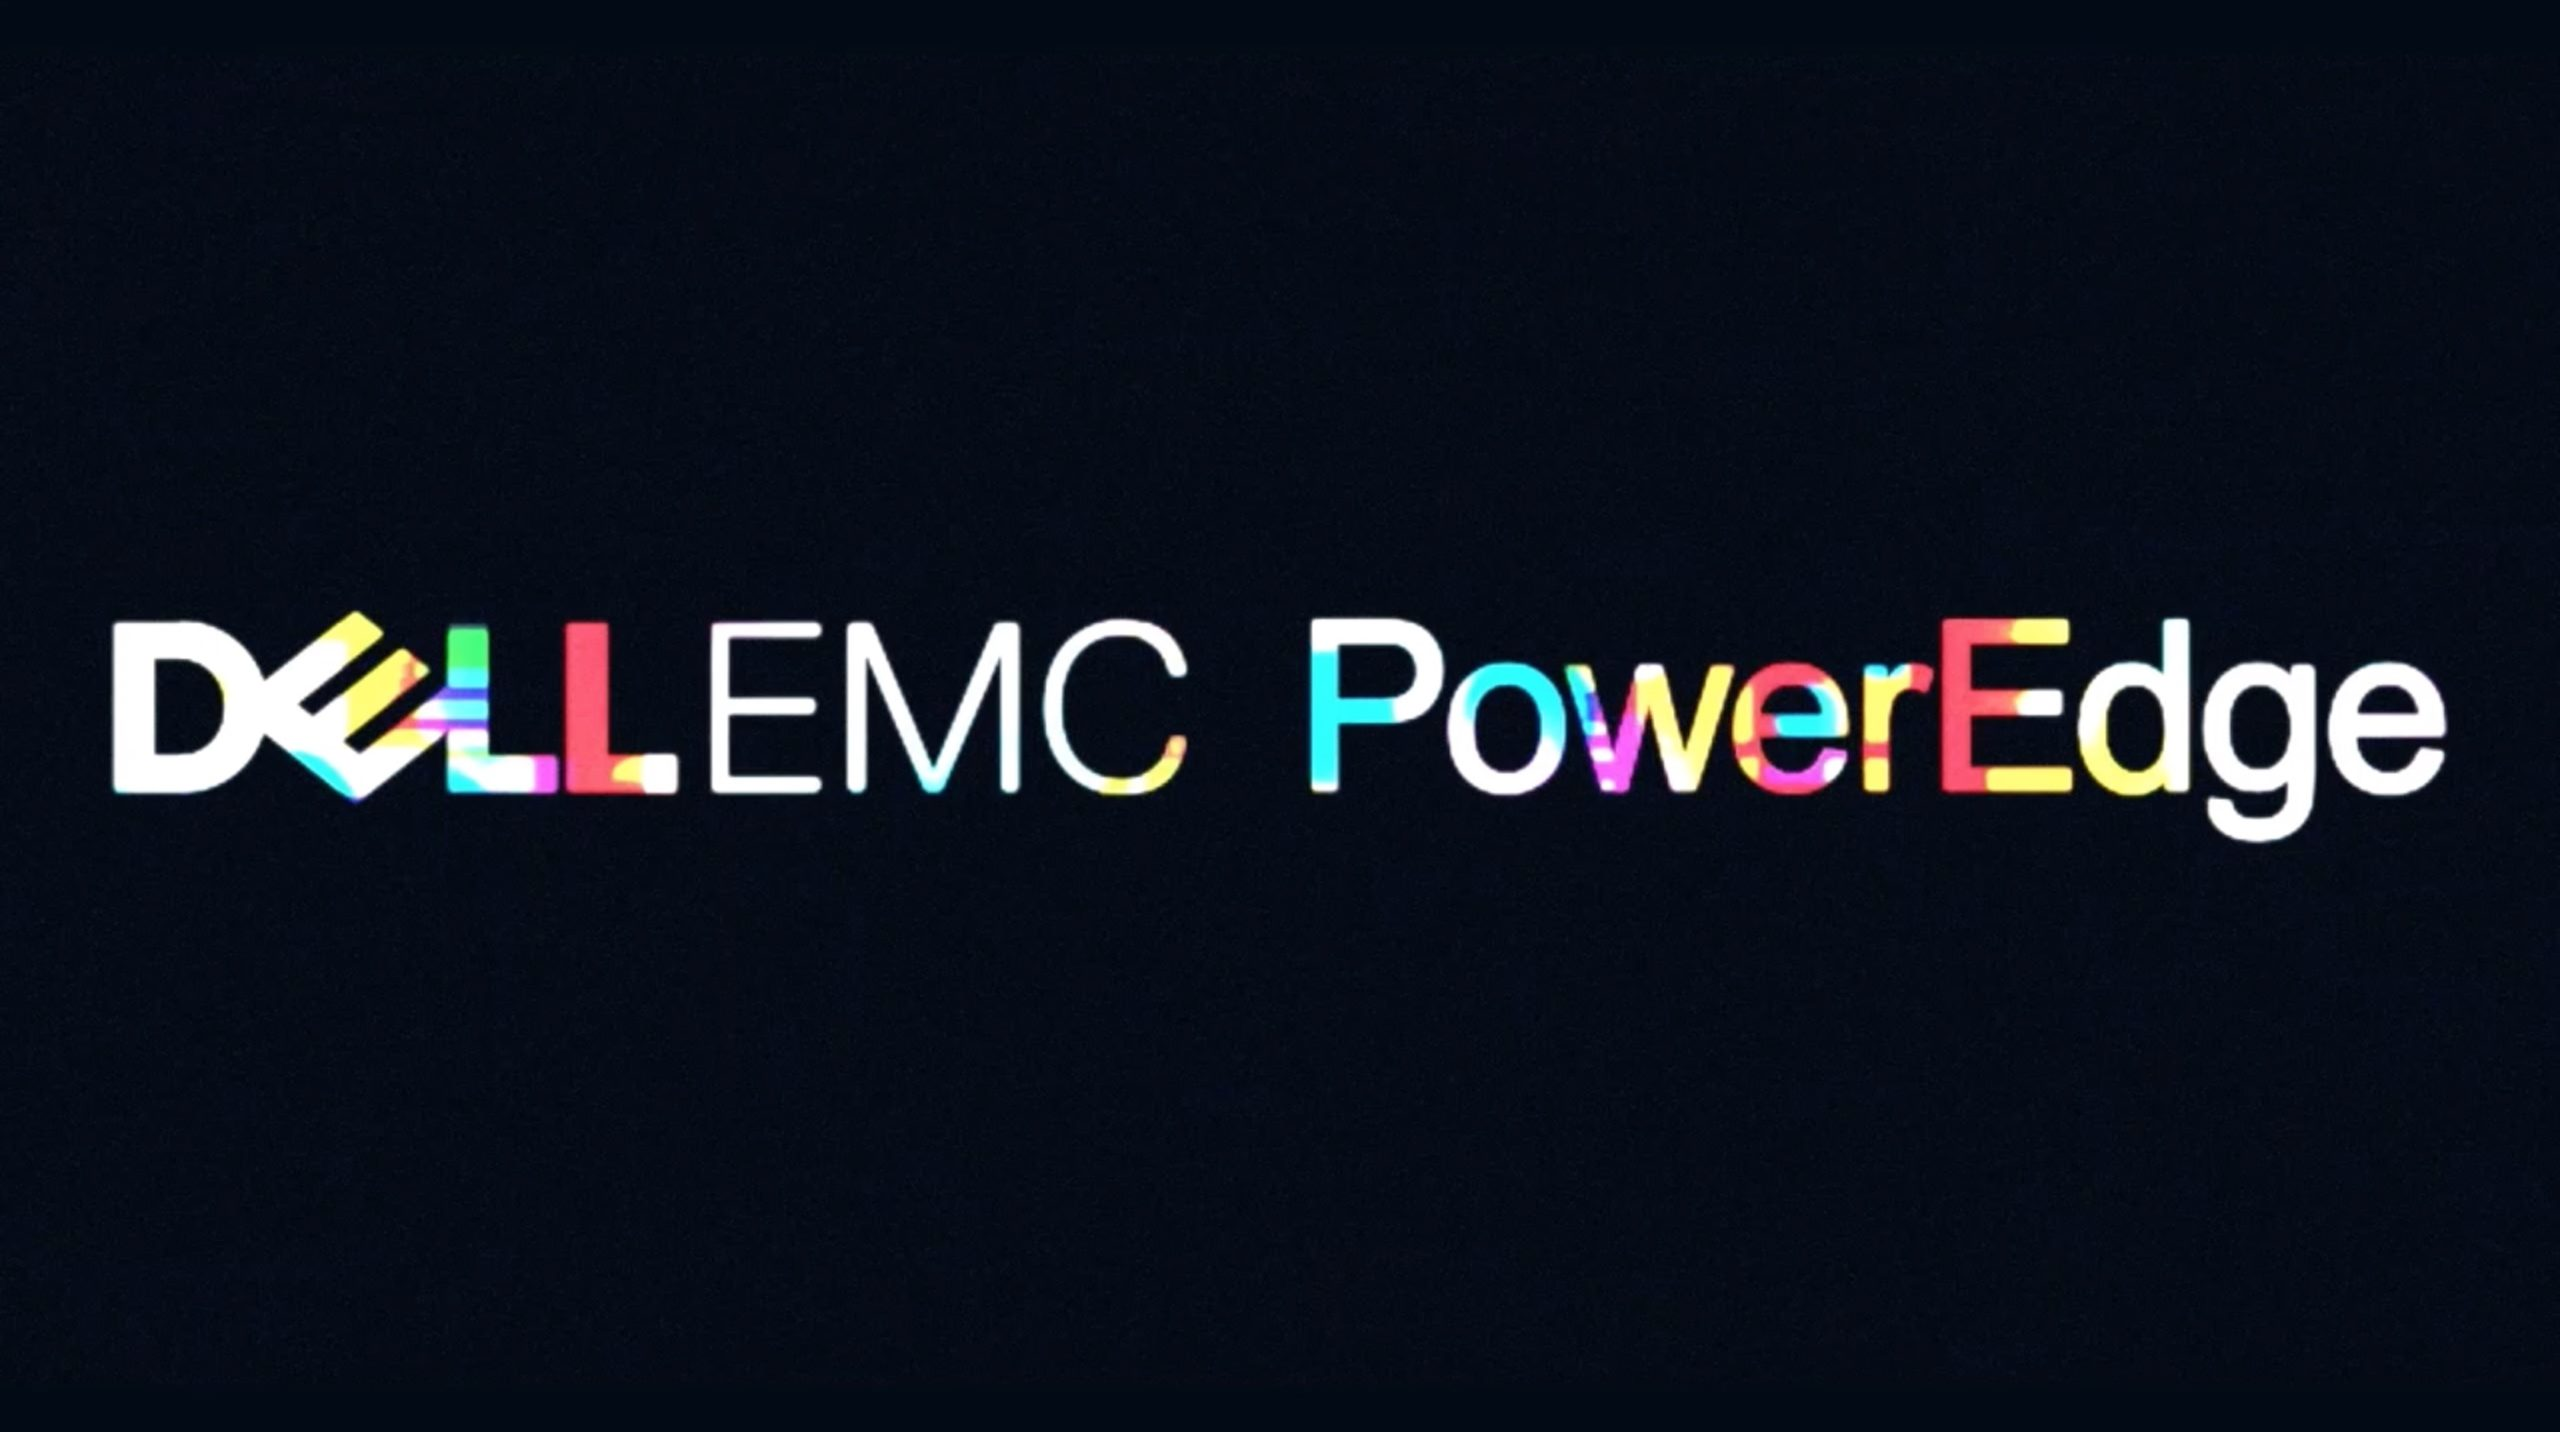 Dell EMC Exhibition booth promotion movie